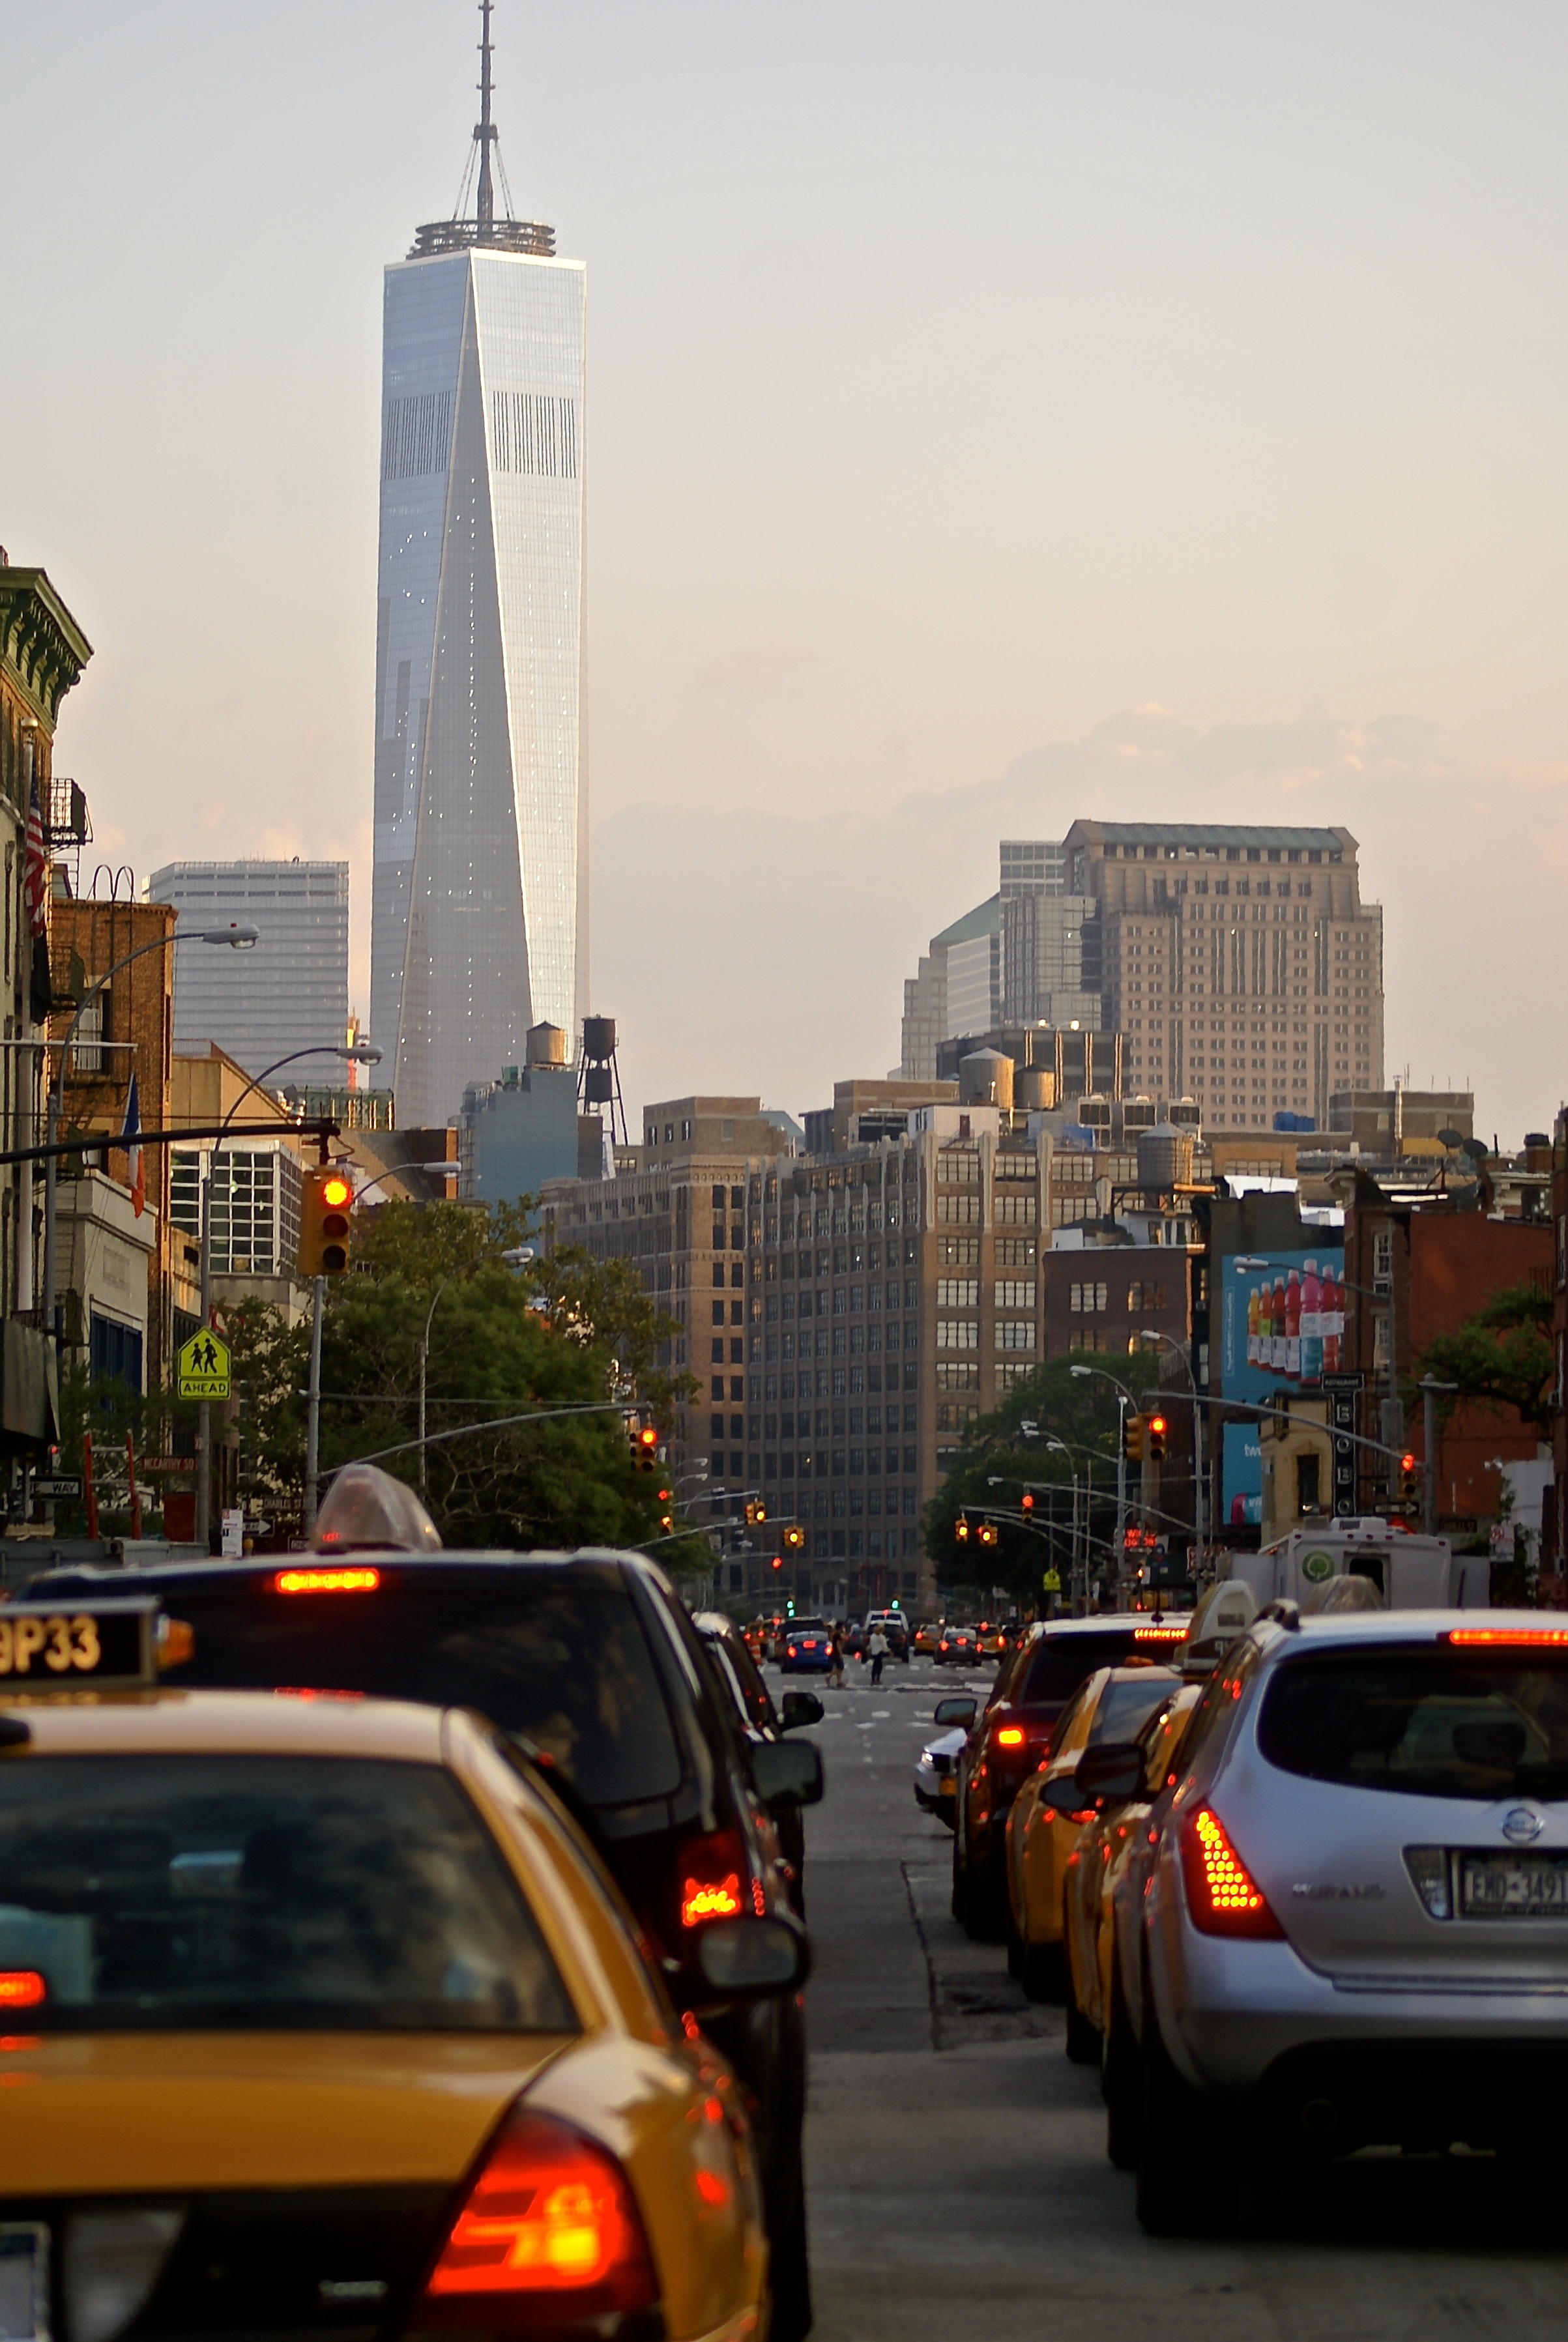 The Freedom Tower as seen from Chelsea.